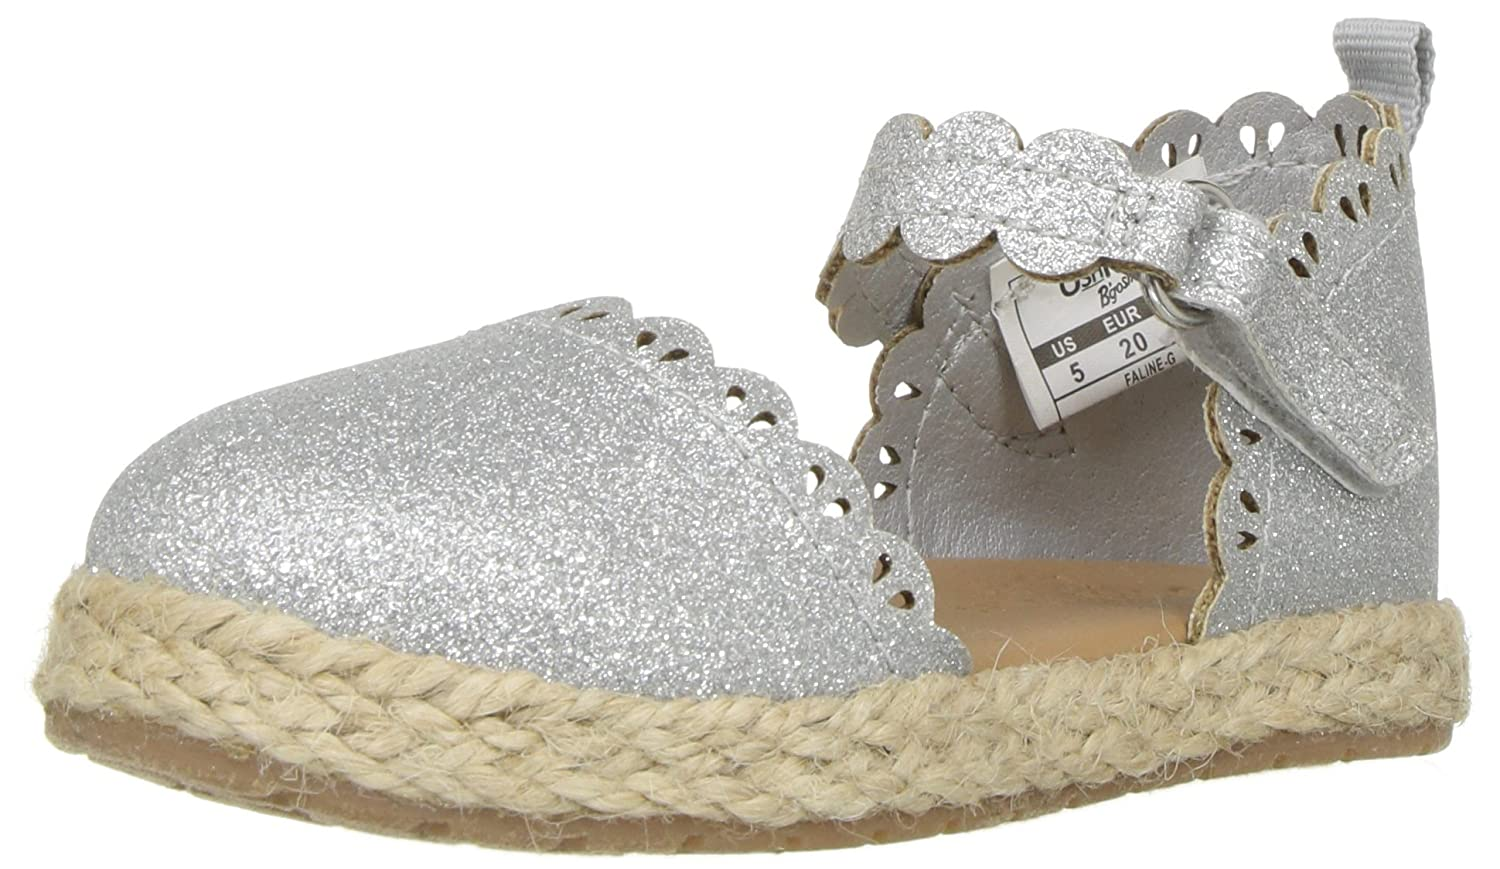 OshKosh B'Gosh Kids Faline Girl's Closed Toe Espadrille Sandal Mary Jane Flat OshKosh B' Gosh